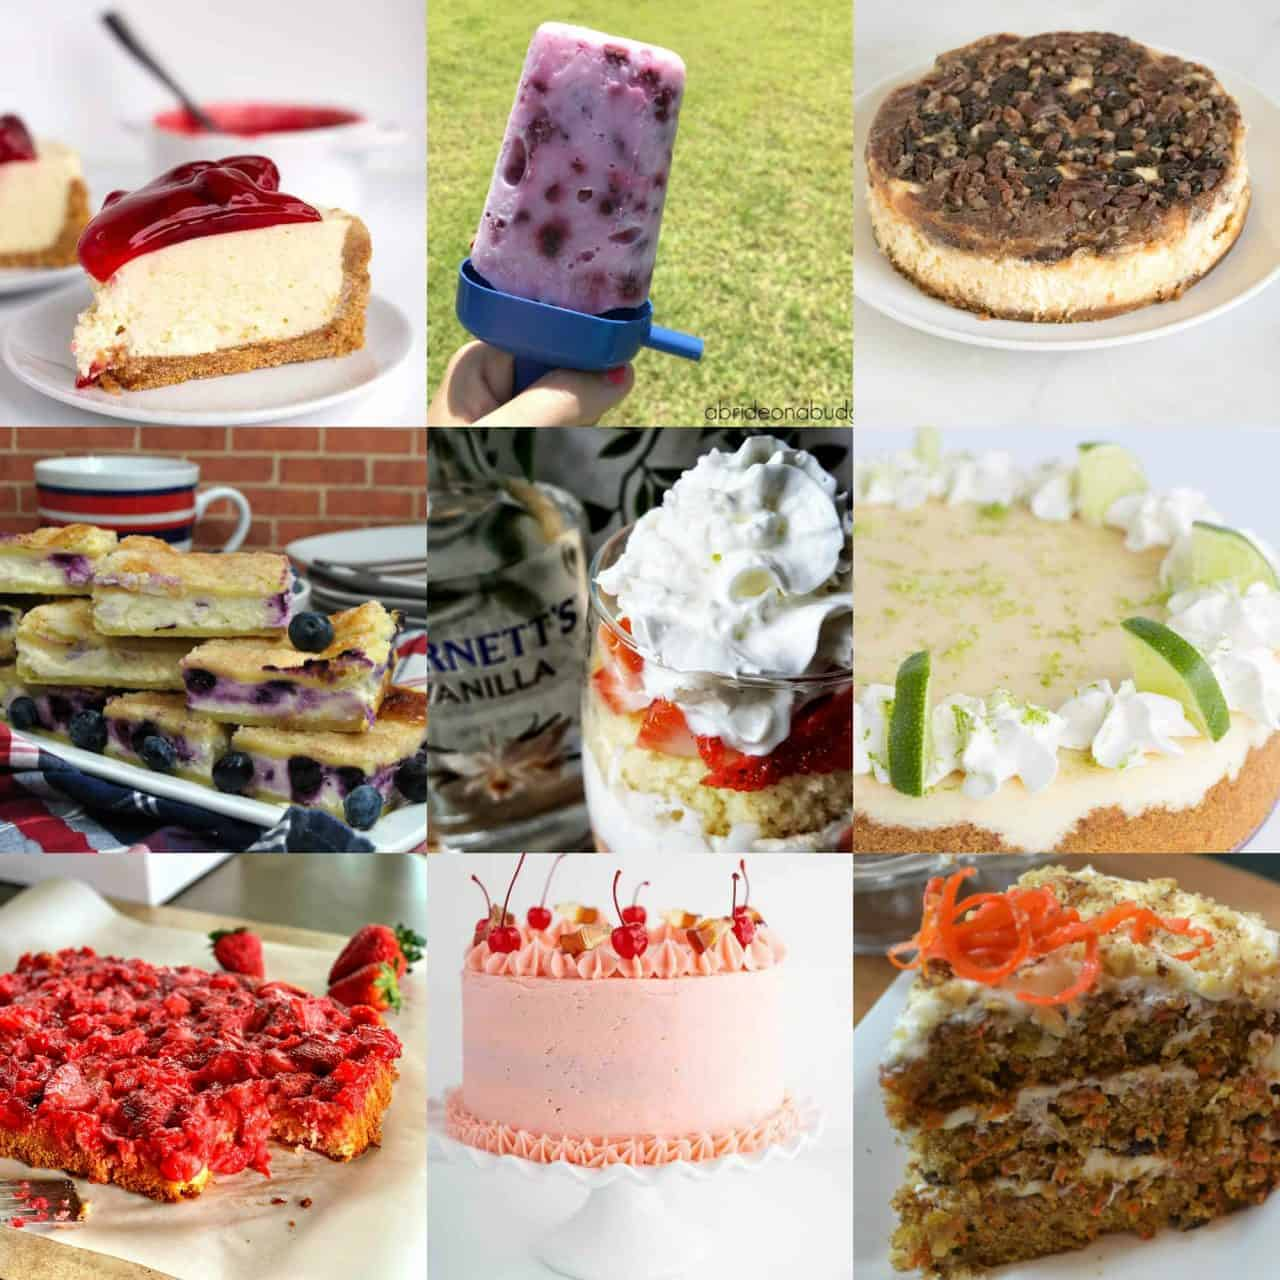 9 lovely photos of desserts that would be wonderful to serve for spring.